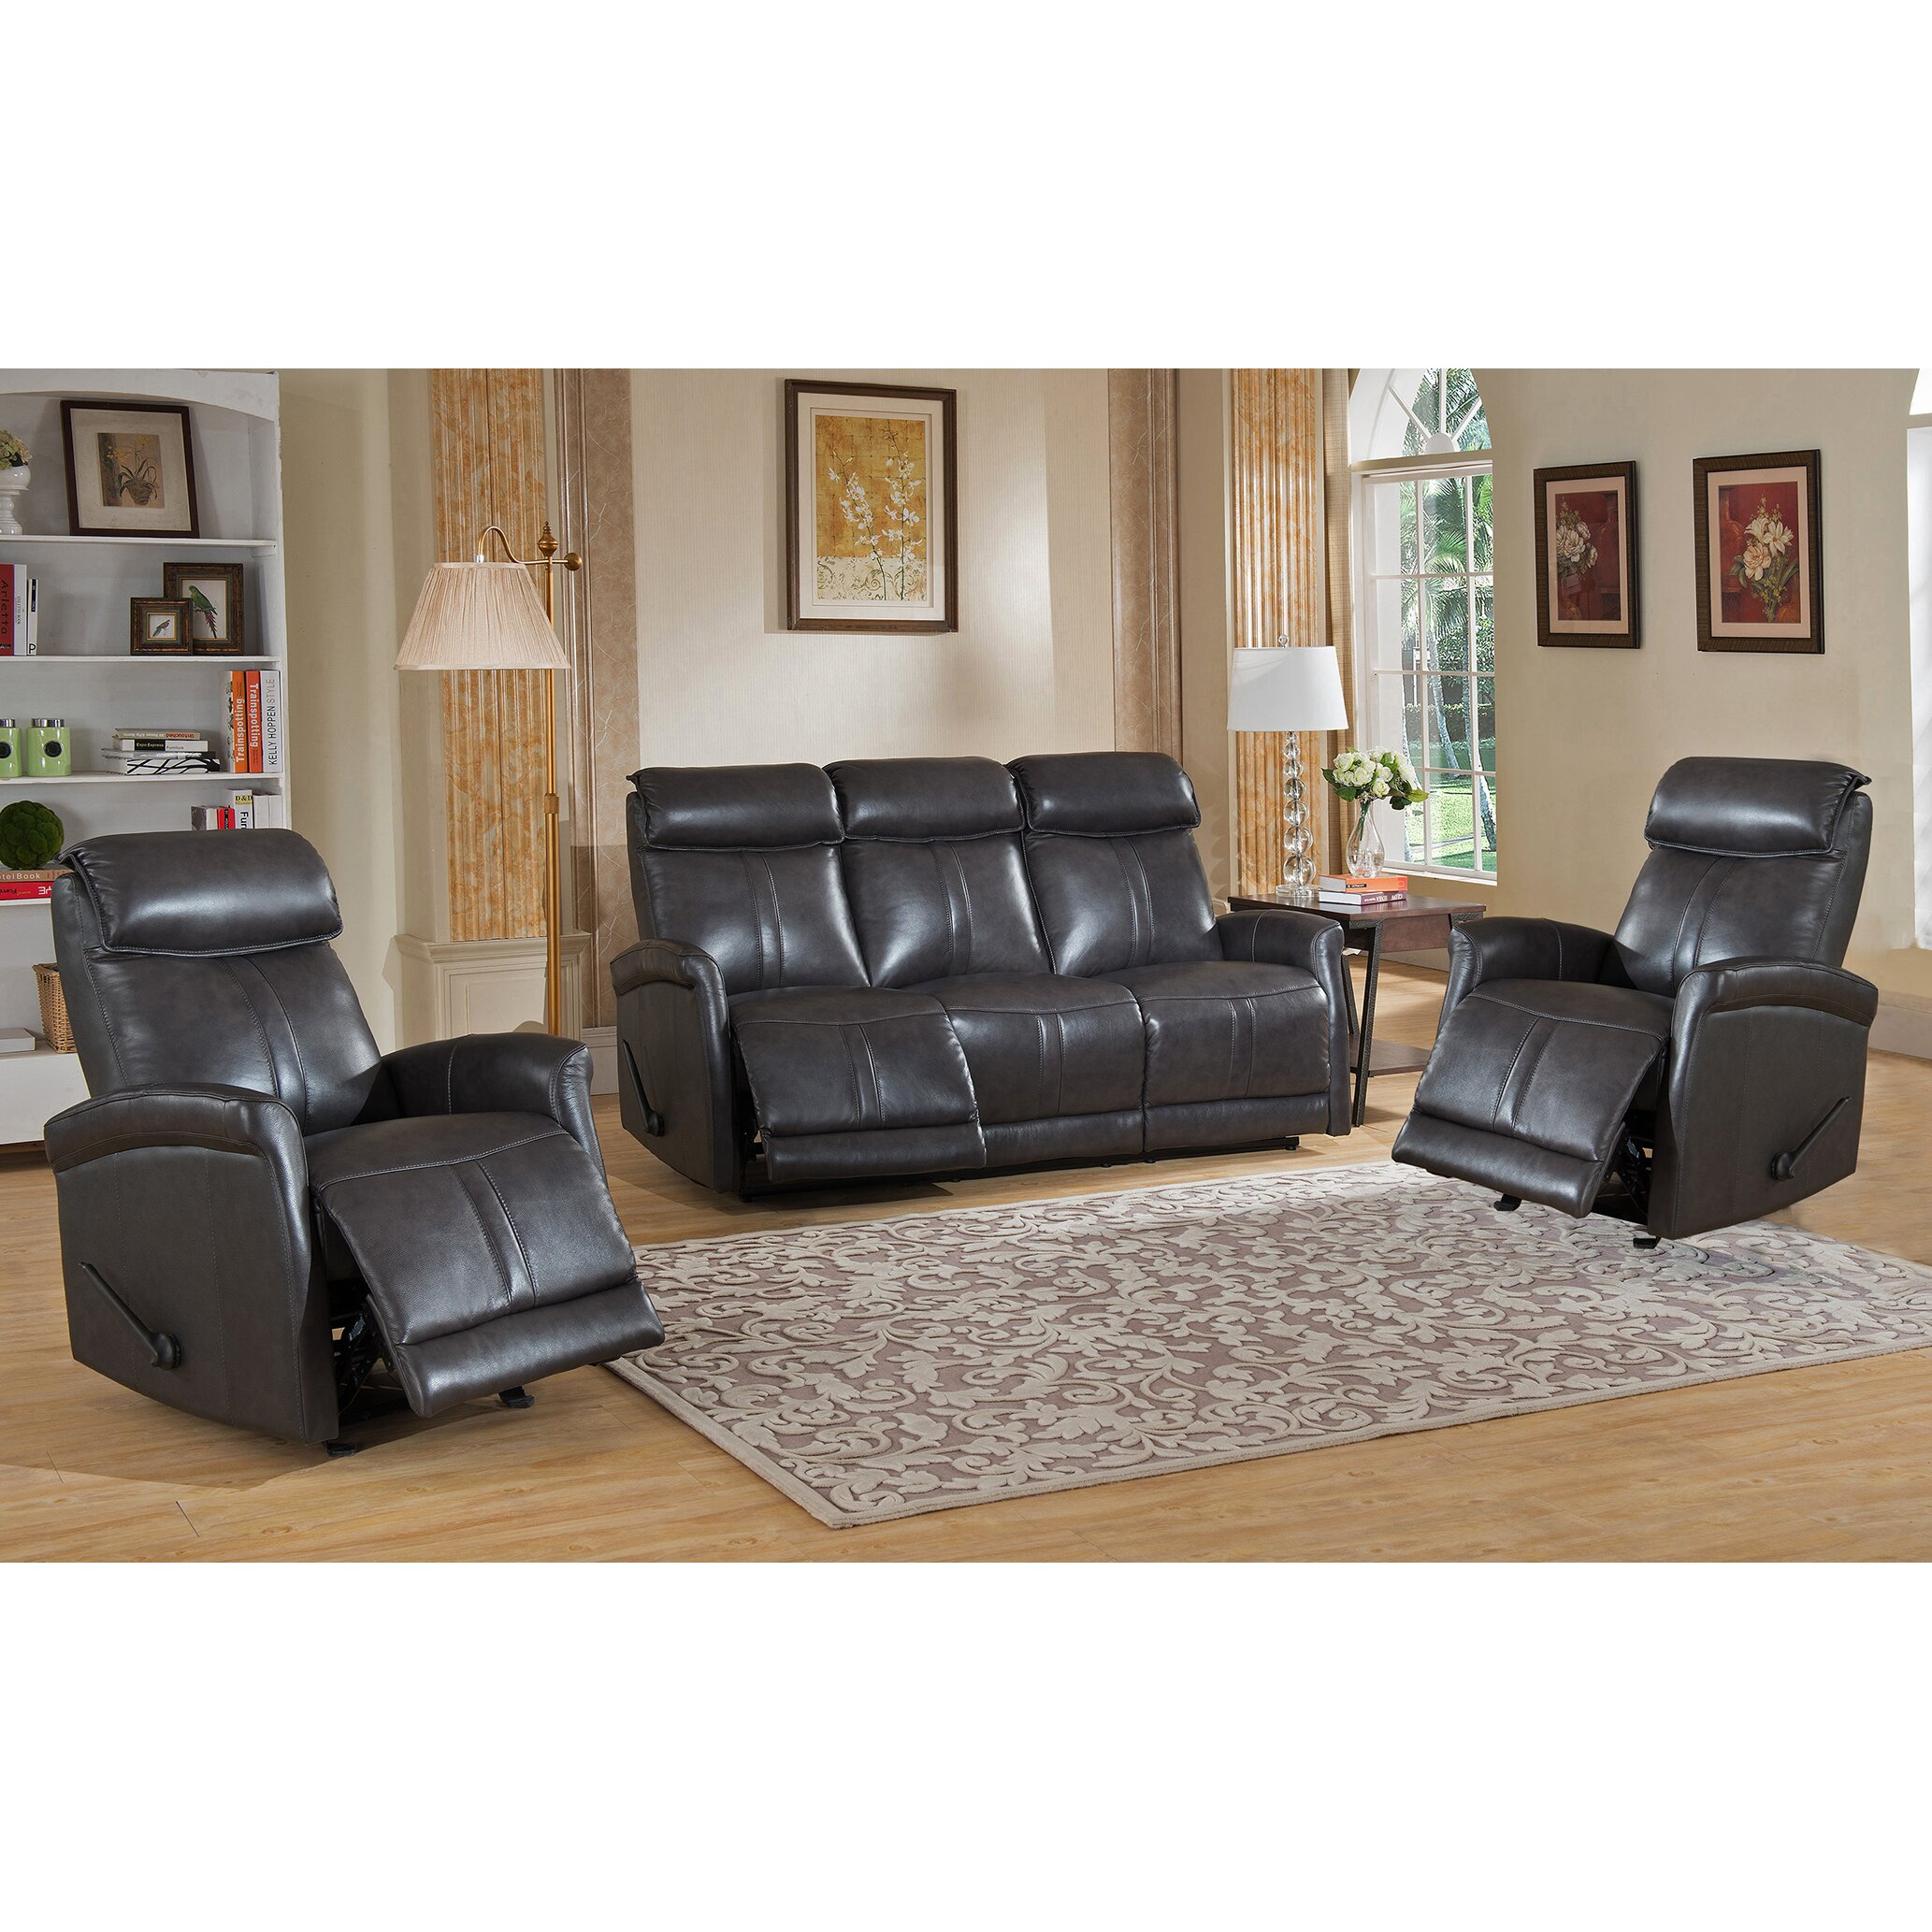 Three Piece Leather Living Room Set. The Best Kitchen Faucets. Abc Kitchen Chef. Peel And Stick Wall Tiles For Kitchen. Images Of White Kitchen Cabinets. Diy Kitchen Floor Ideas. Kitchen Remodel Steps. Kitchen Sink Drainer. Kitchen Island With 4 Stools